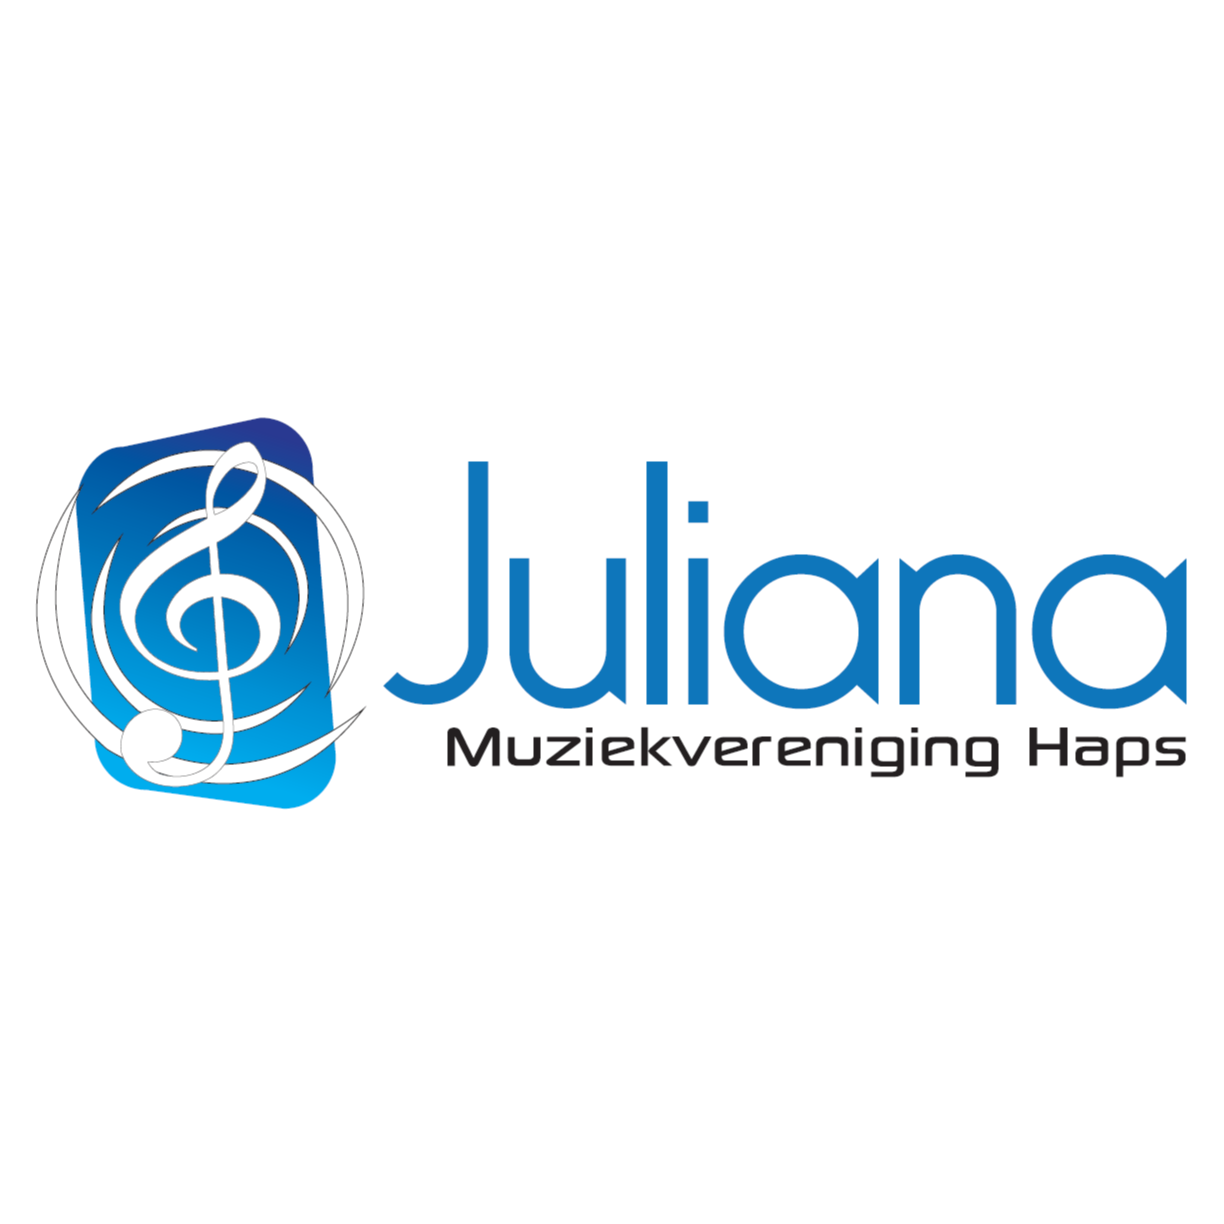 Muziekvereniging Juliana